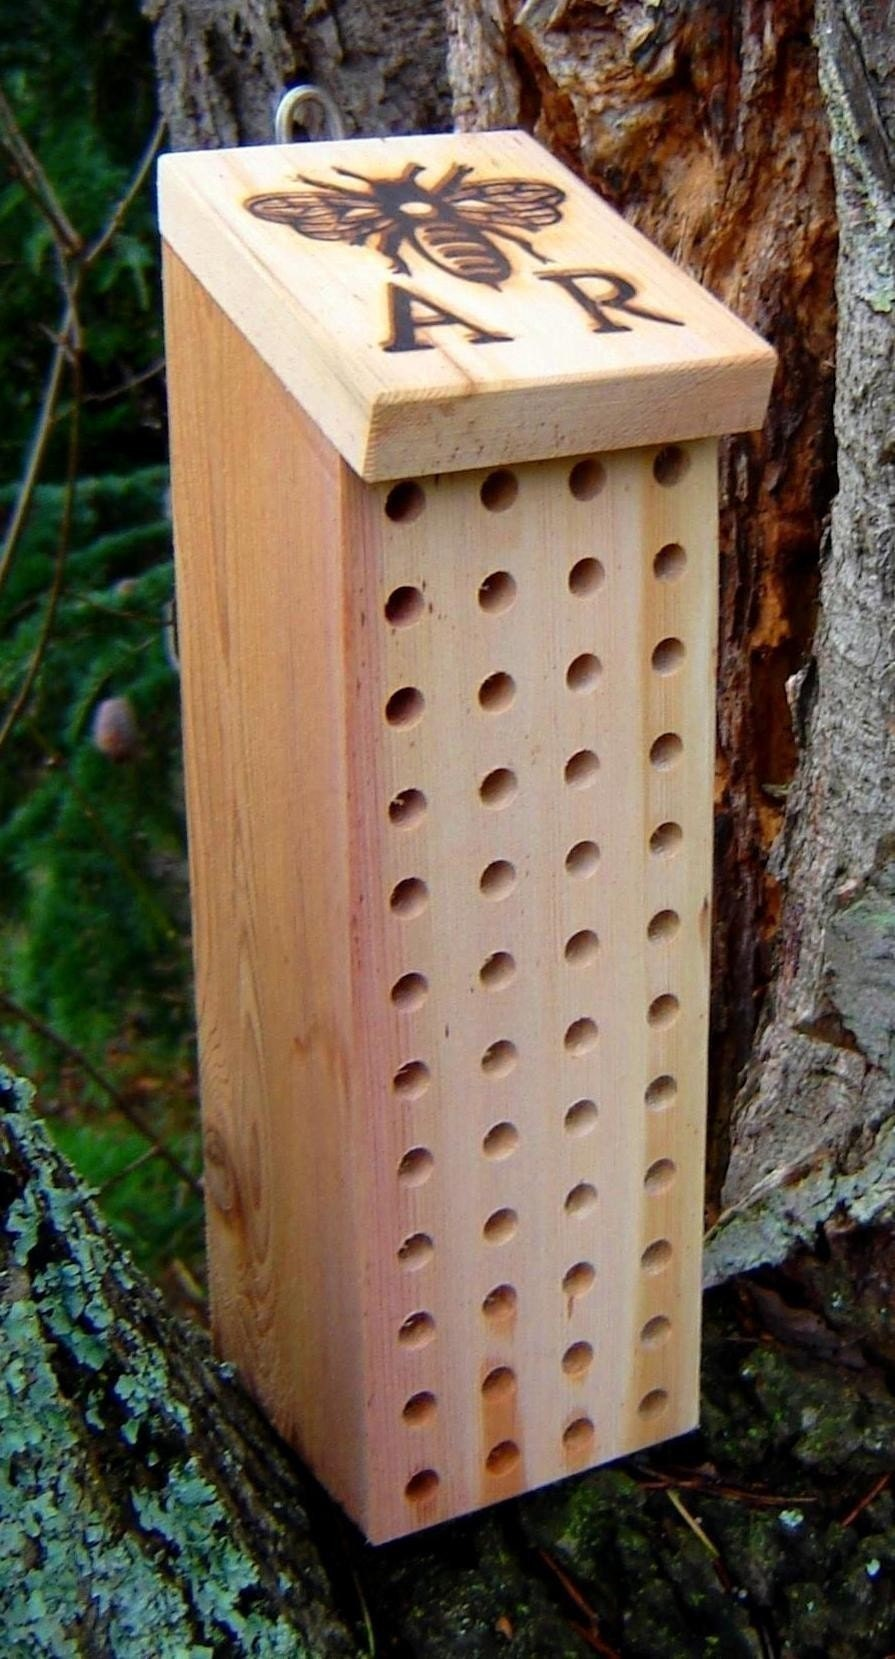 Mason Bee Nest Beehive Block from Recycled Wood, Garden Supplies for Pollination